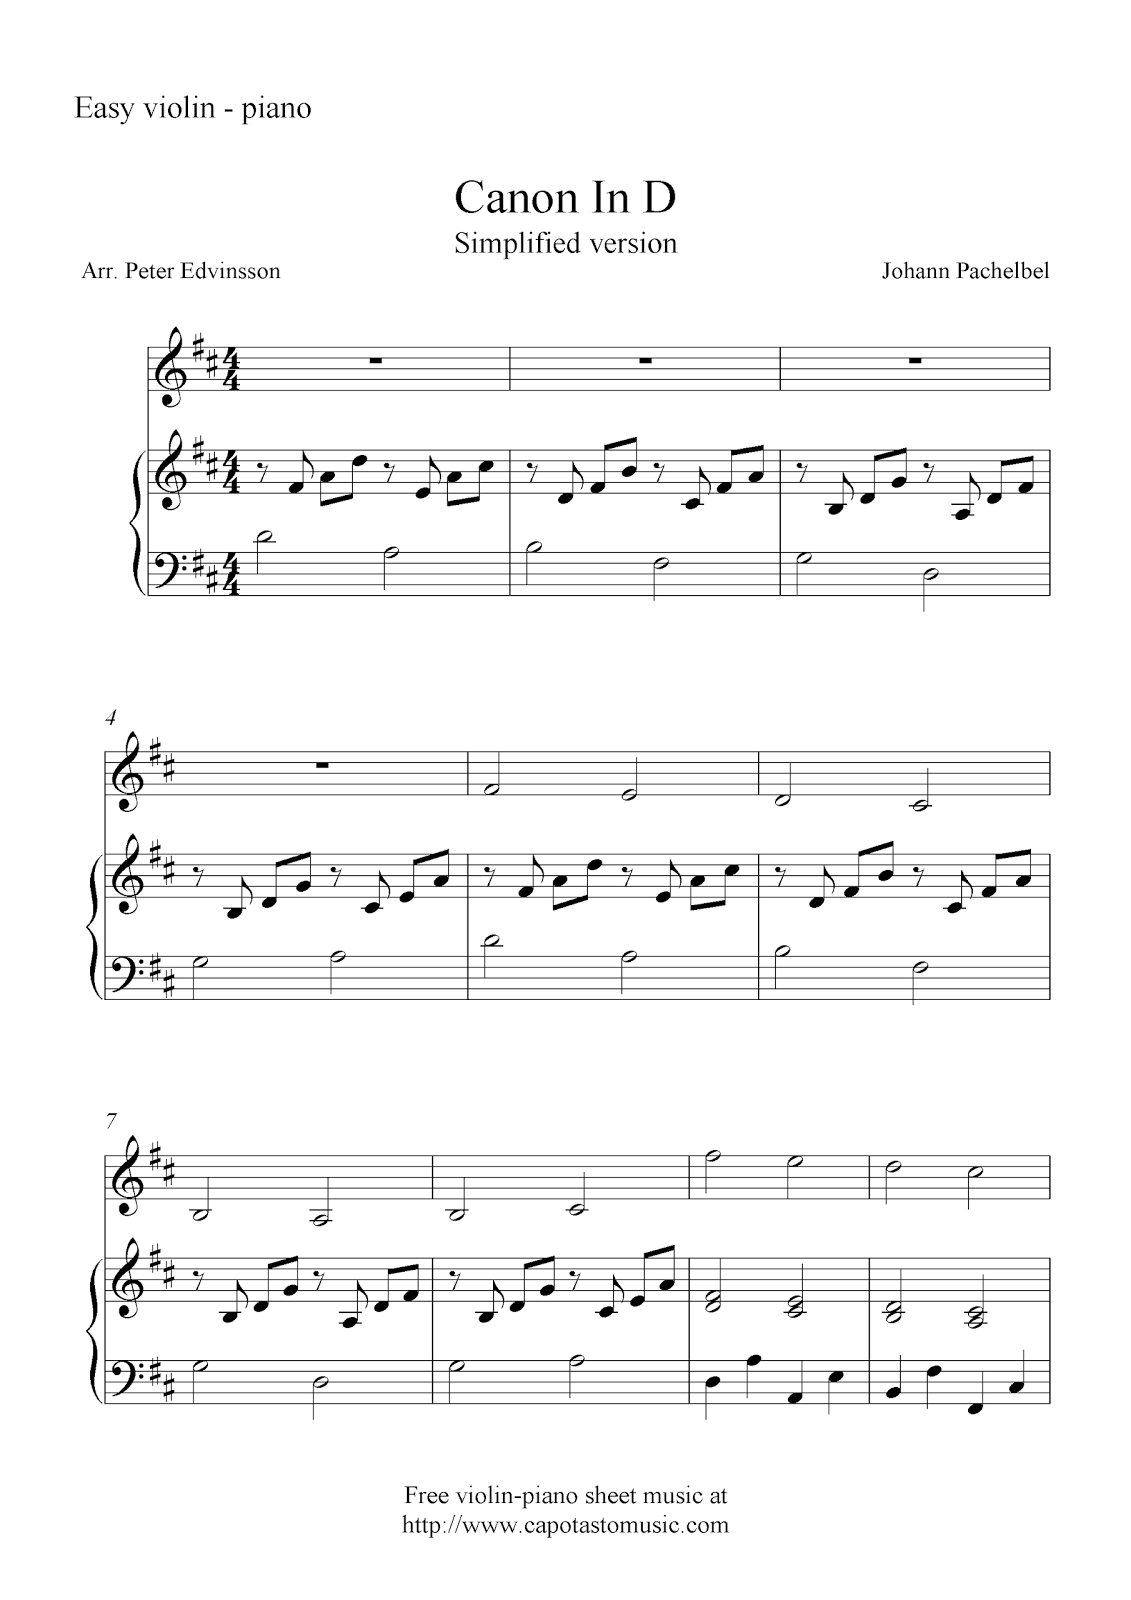 canon in d simplified version free violin and piano sheet music notes. Black Bedroom Furniture Sets. Home Design Ideas